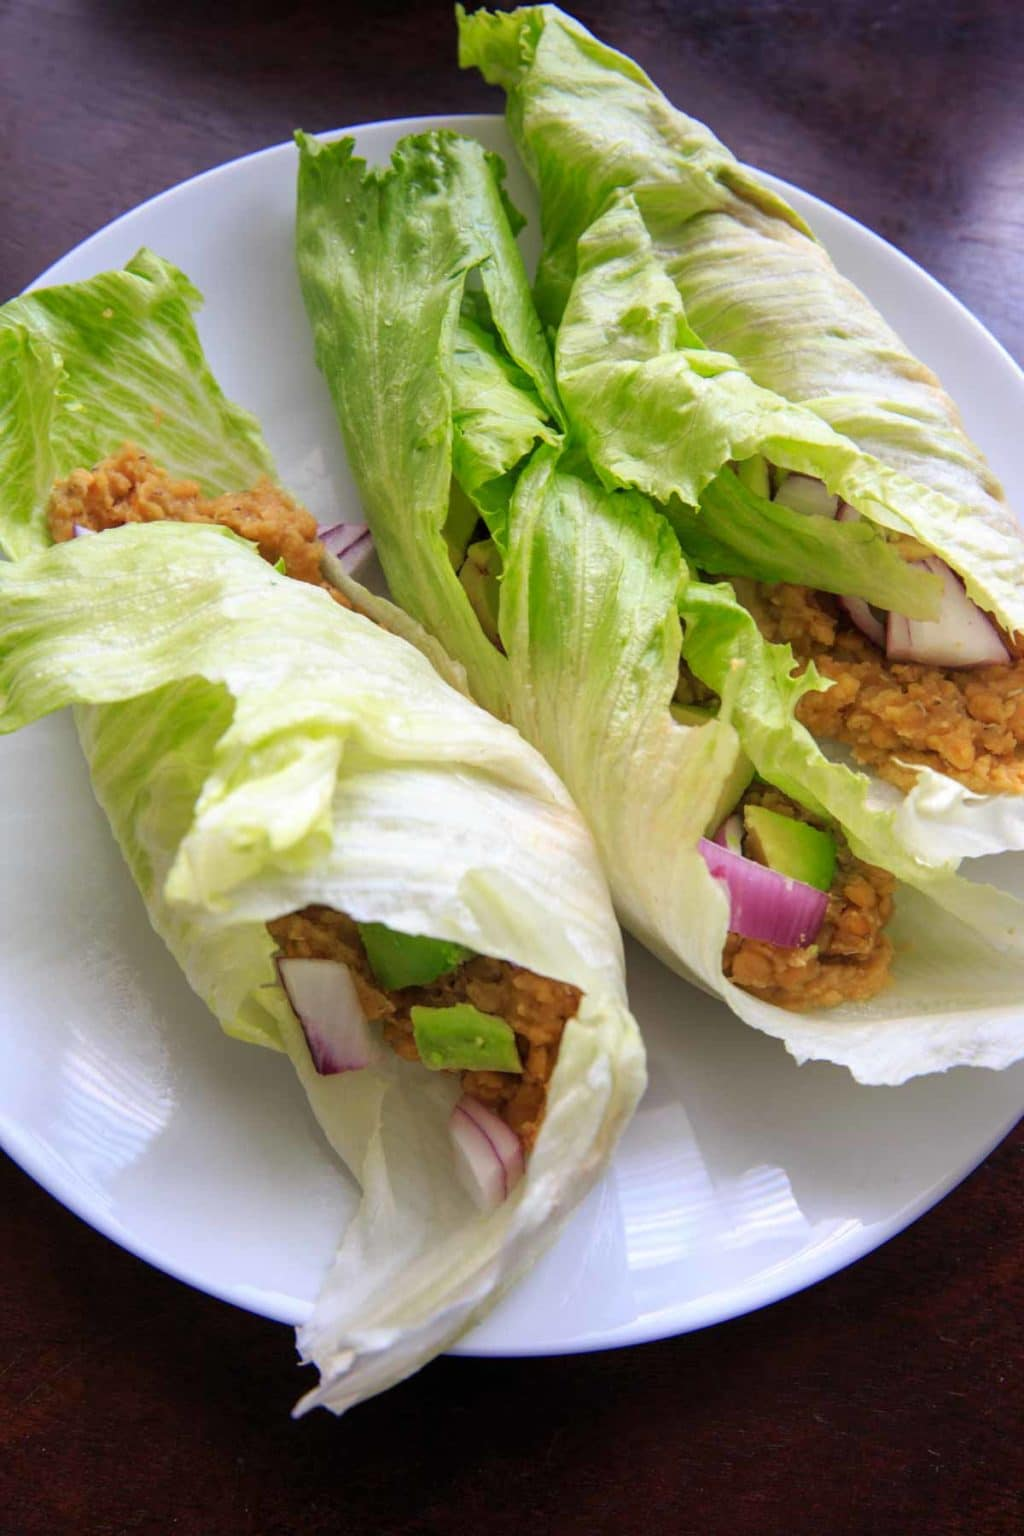 Lentil lettuce wraps with lemon garlic hummus. Healthy, easy, customizable and full of flavor!